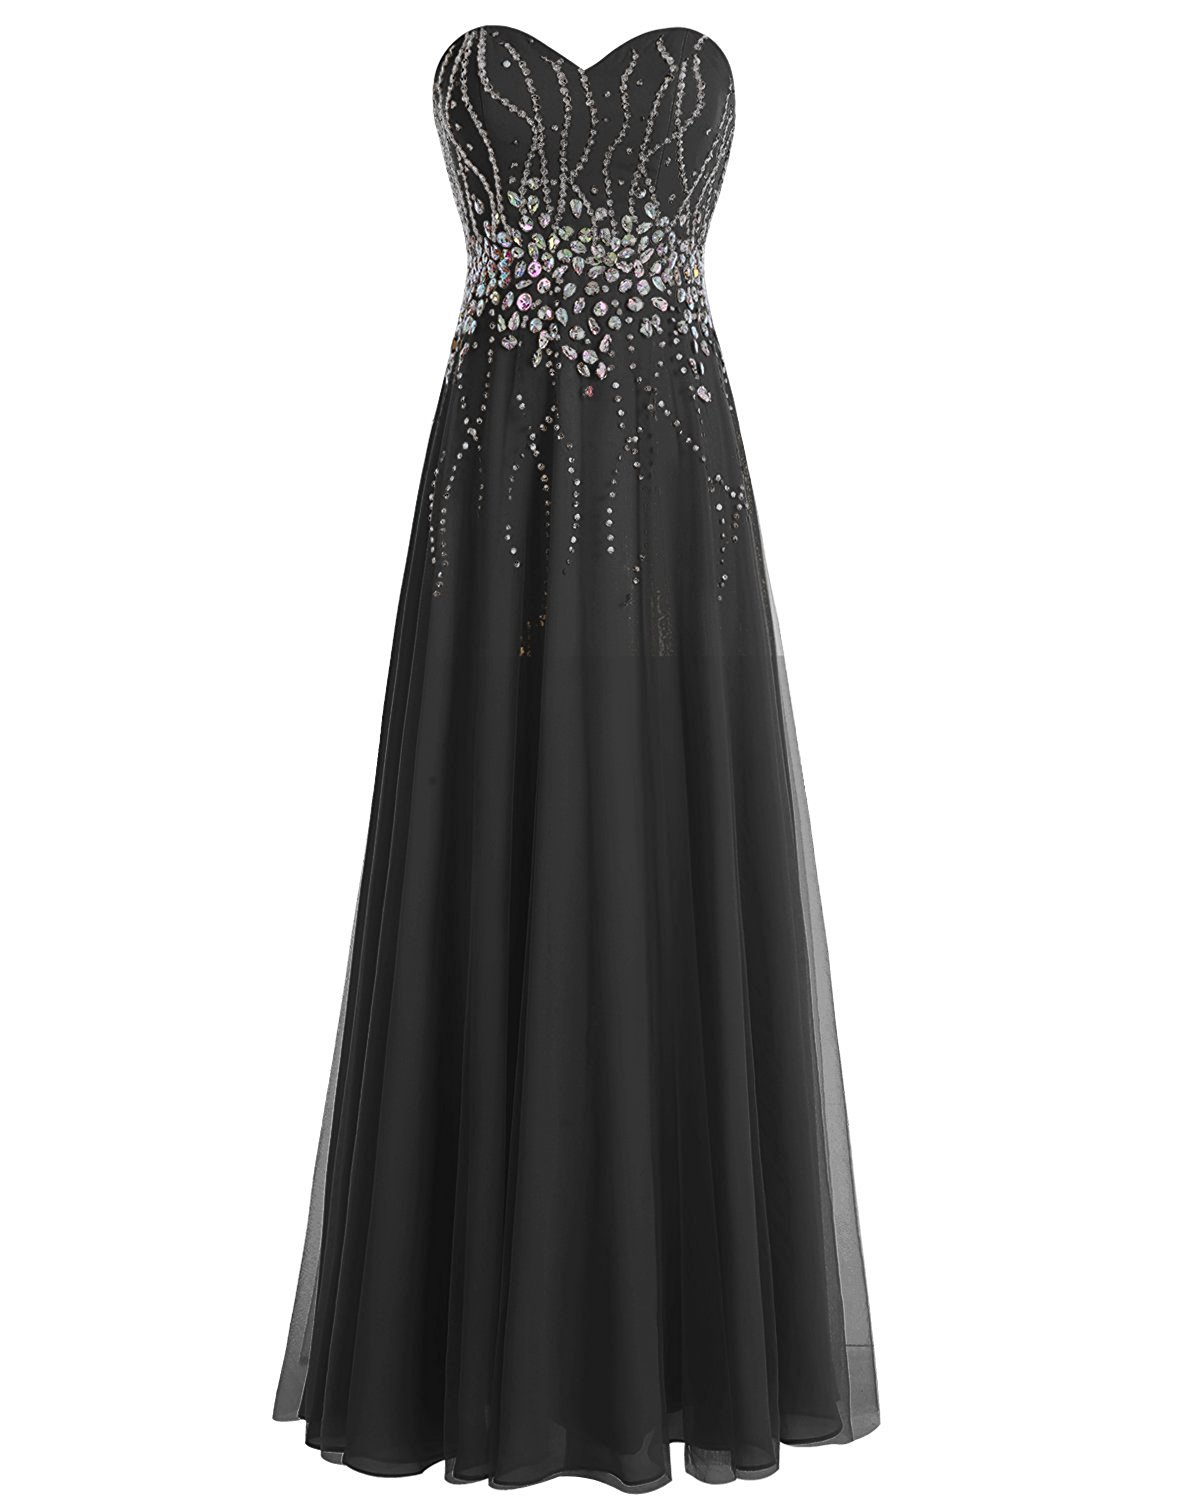 Primary image for Black Long Tulle Sweetheart Prom Dresses Beaded Bridesmaid Gown Evening Dress